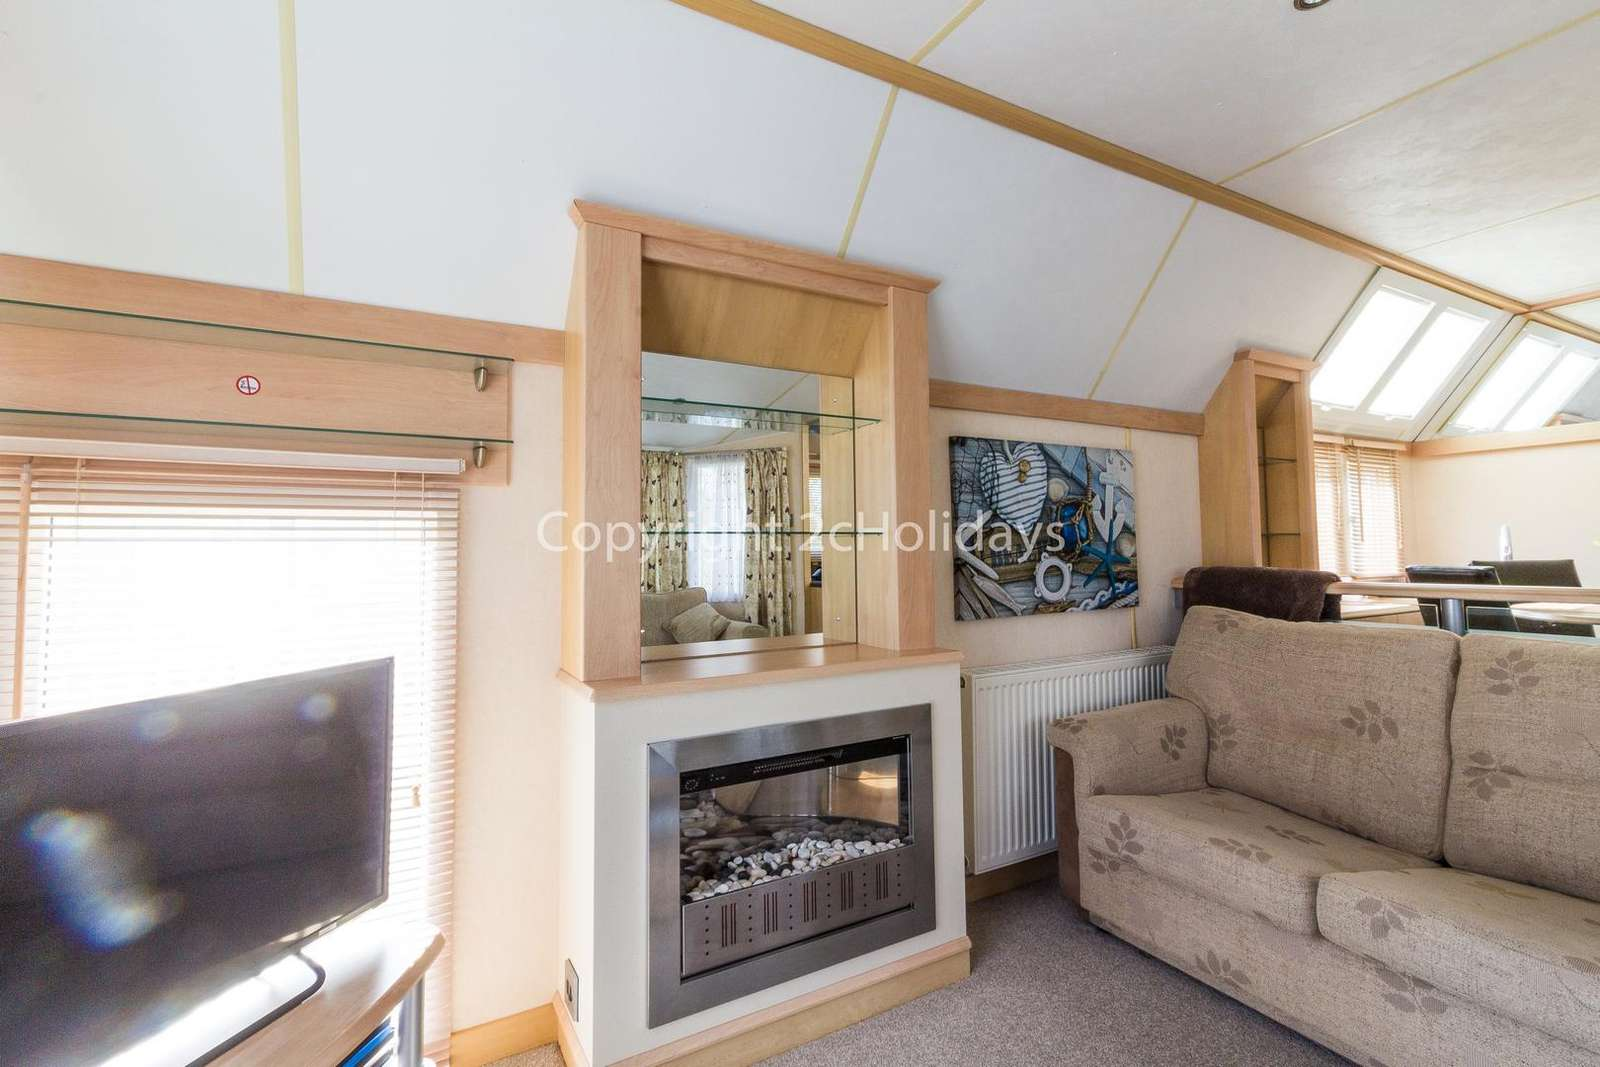 Lovely gas fire giving a homely feel to this caravan